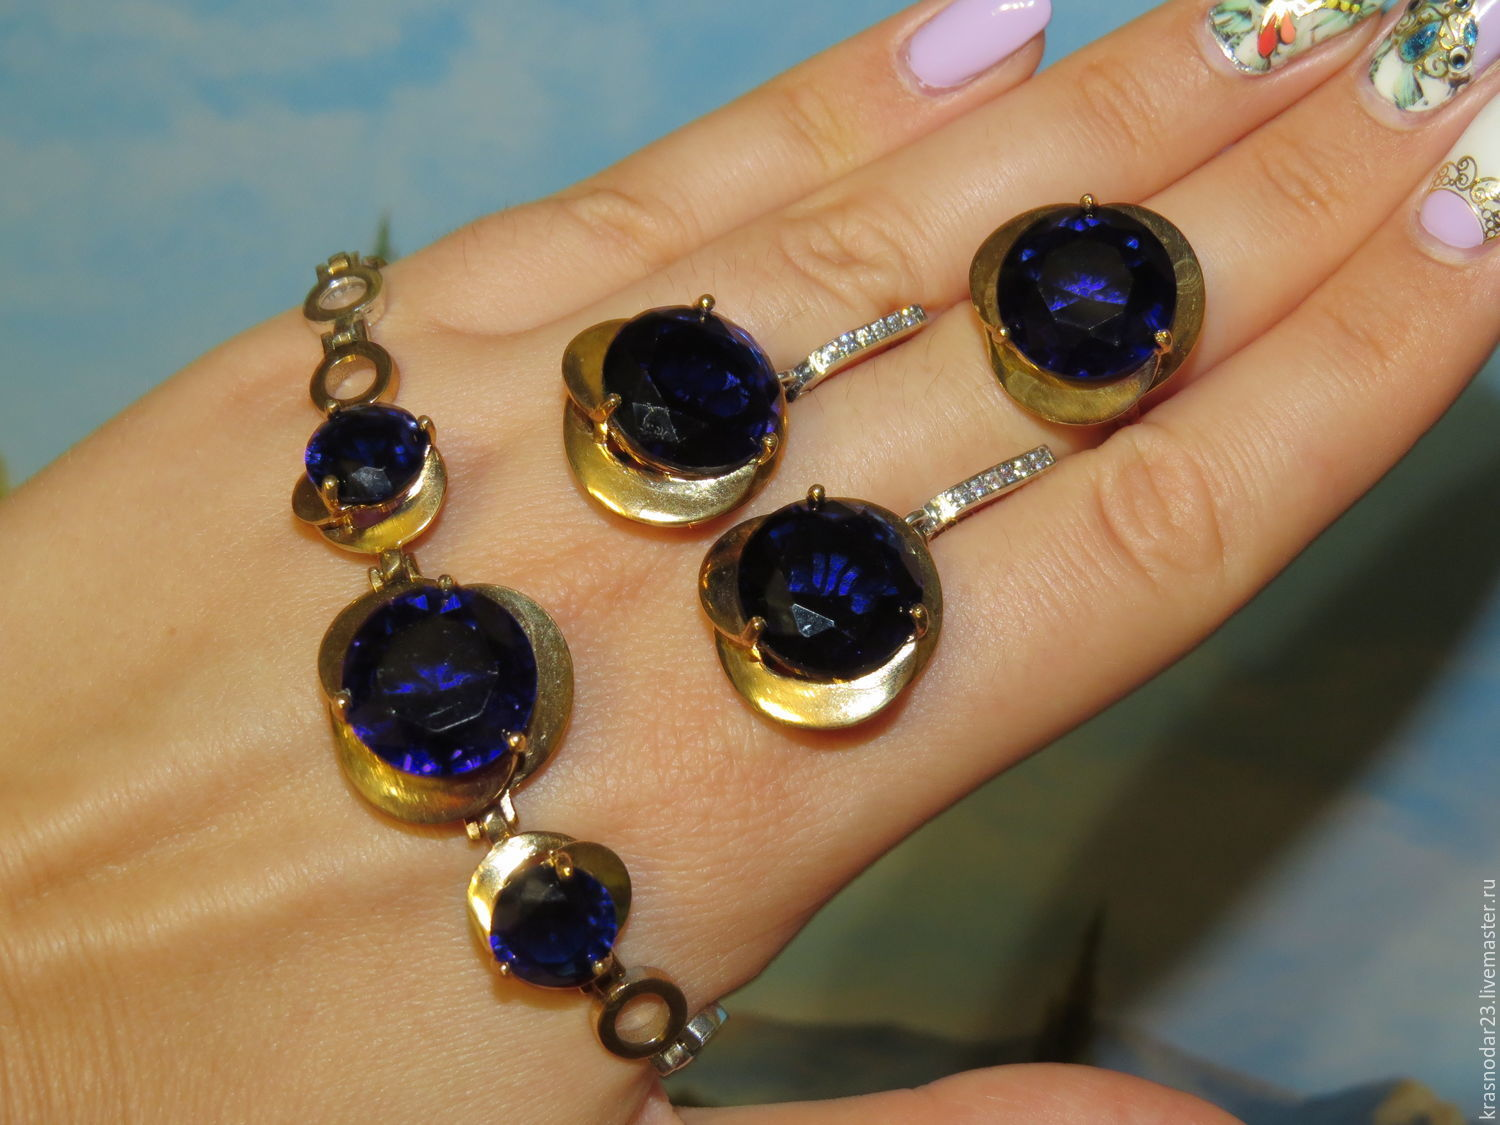 A set of 925 sterling SILVER with elements of gilding in 24-carat resplendent with quartz rich, Royal blue color